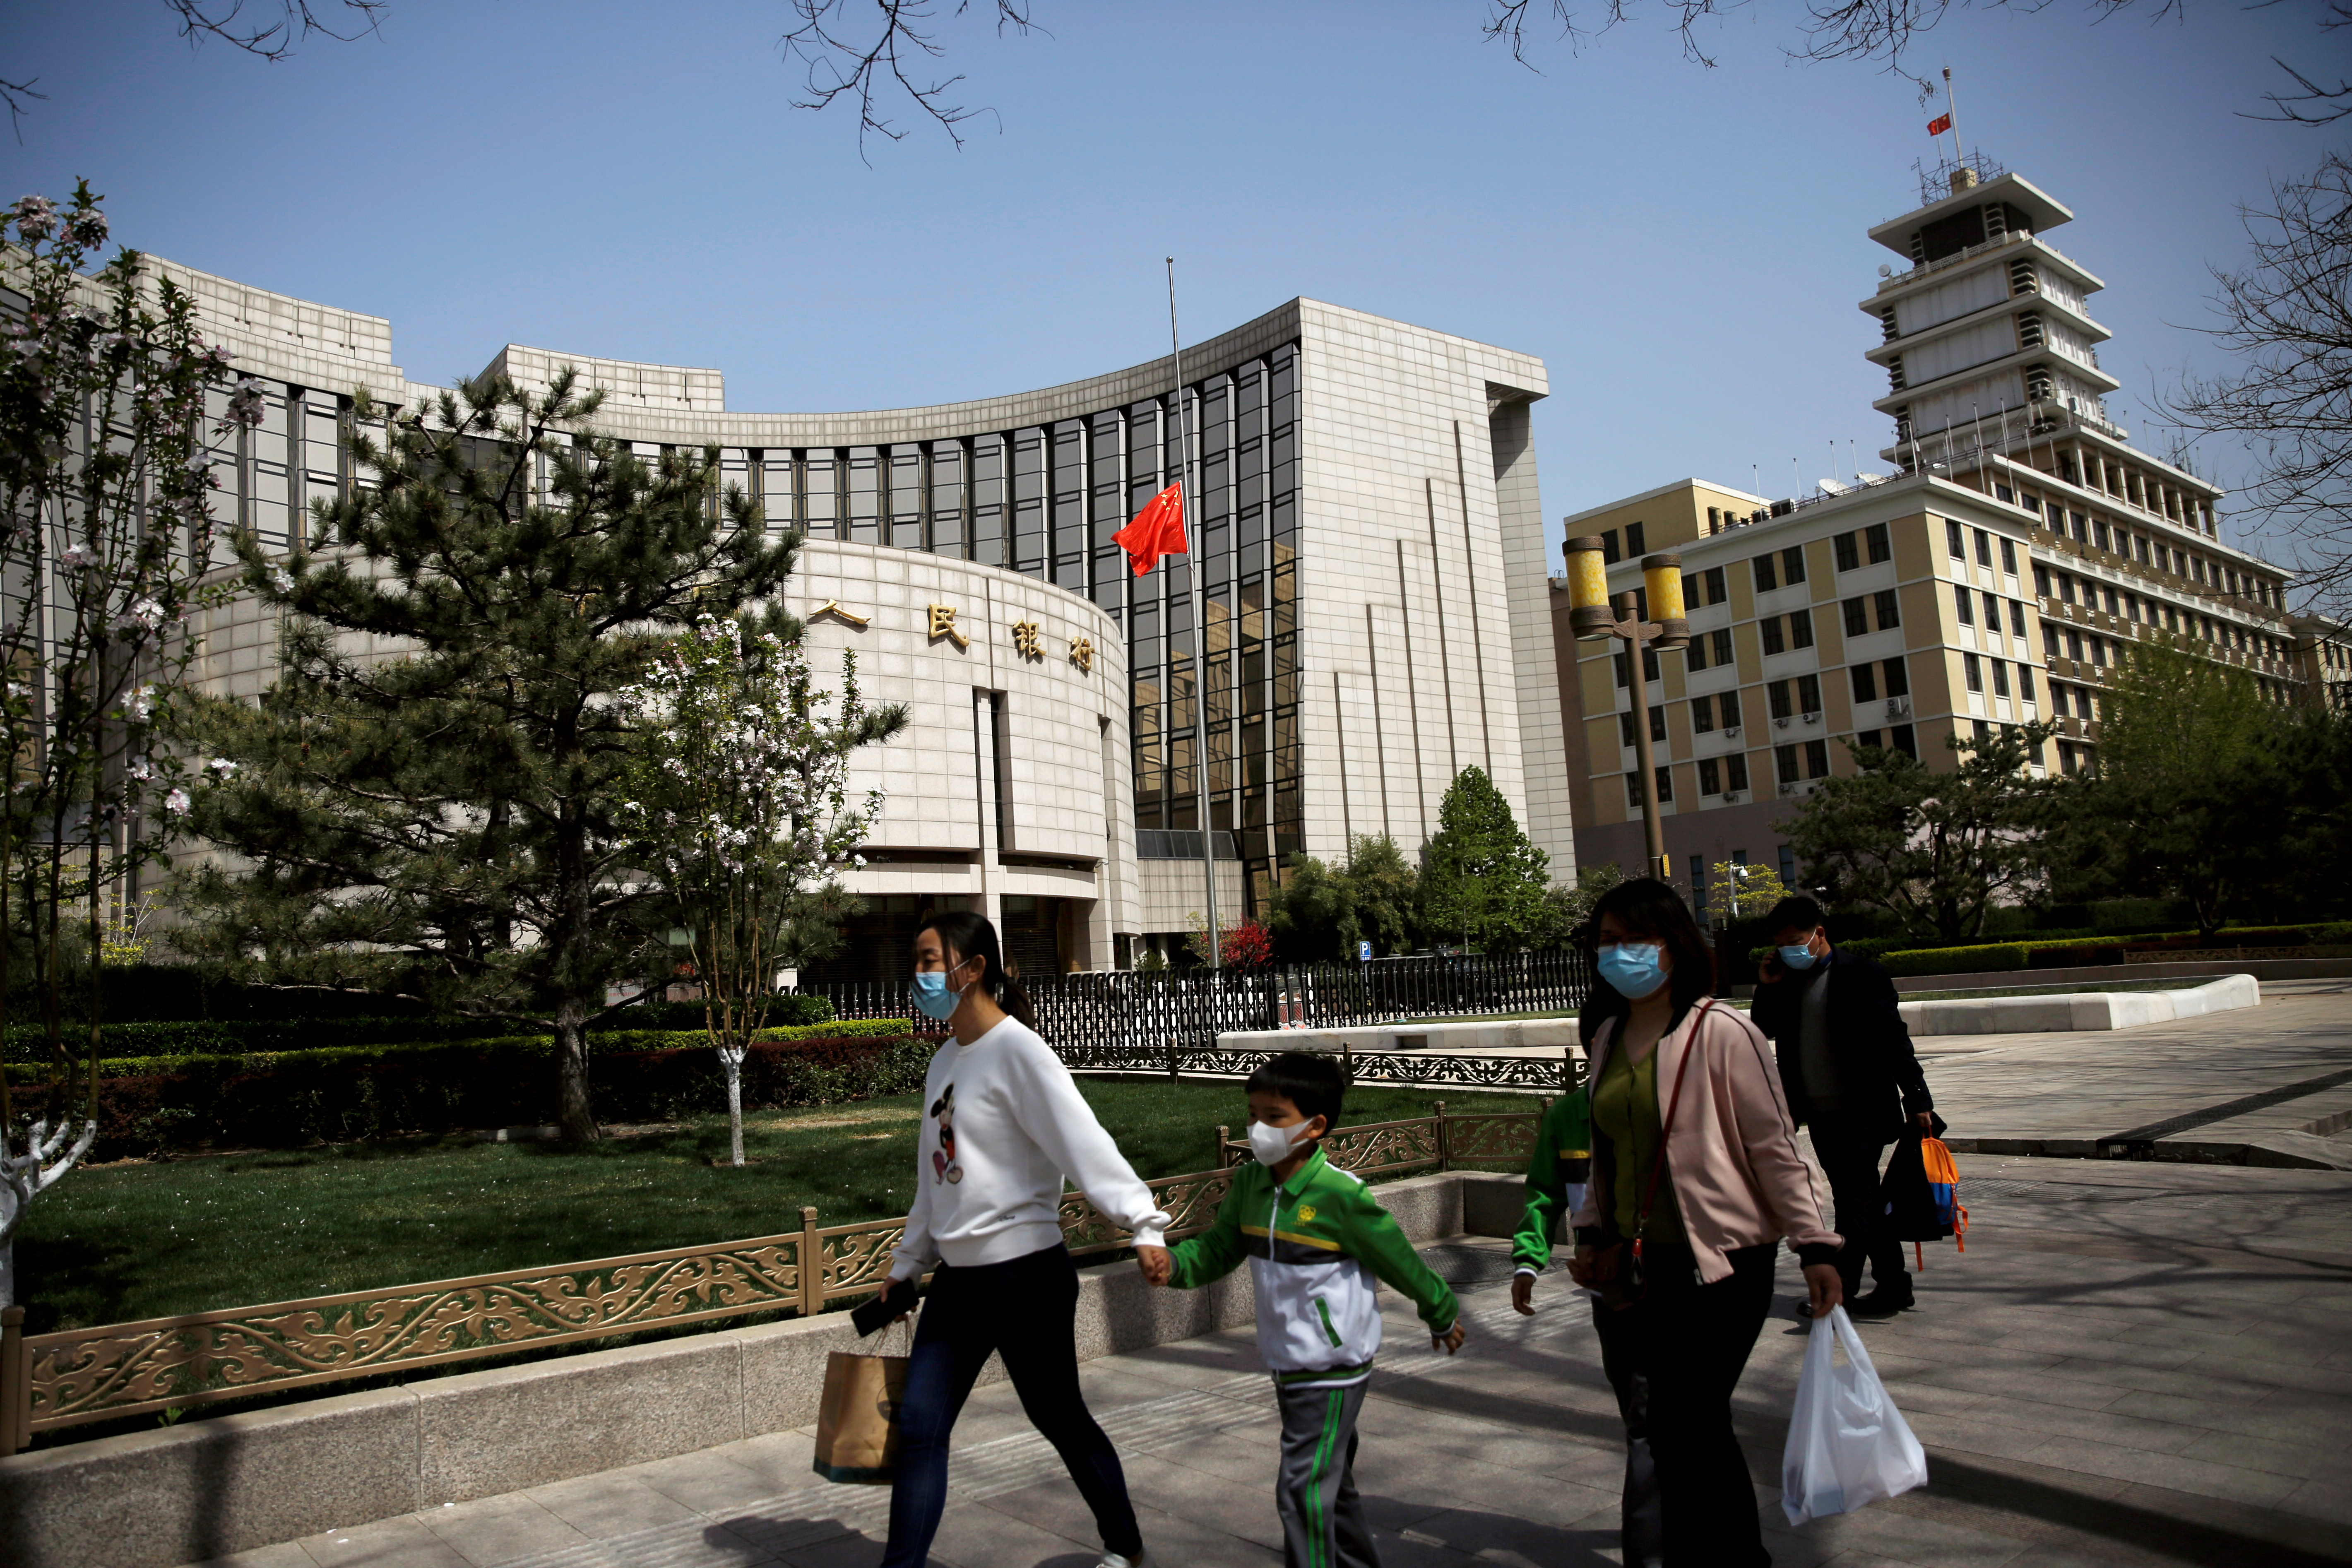 People wearing face masks walk past the headquarters of Chinese central bank People's Bank of China (PBOC), April 4, 2020. REUTERS/Tingshu Wang